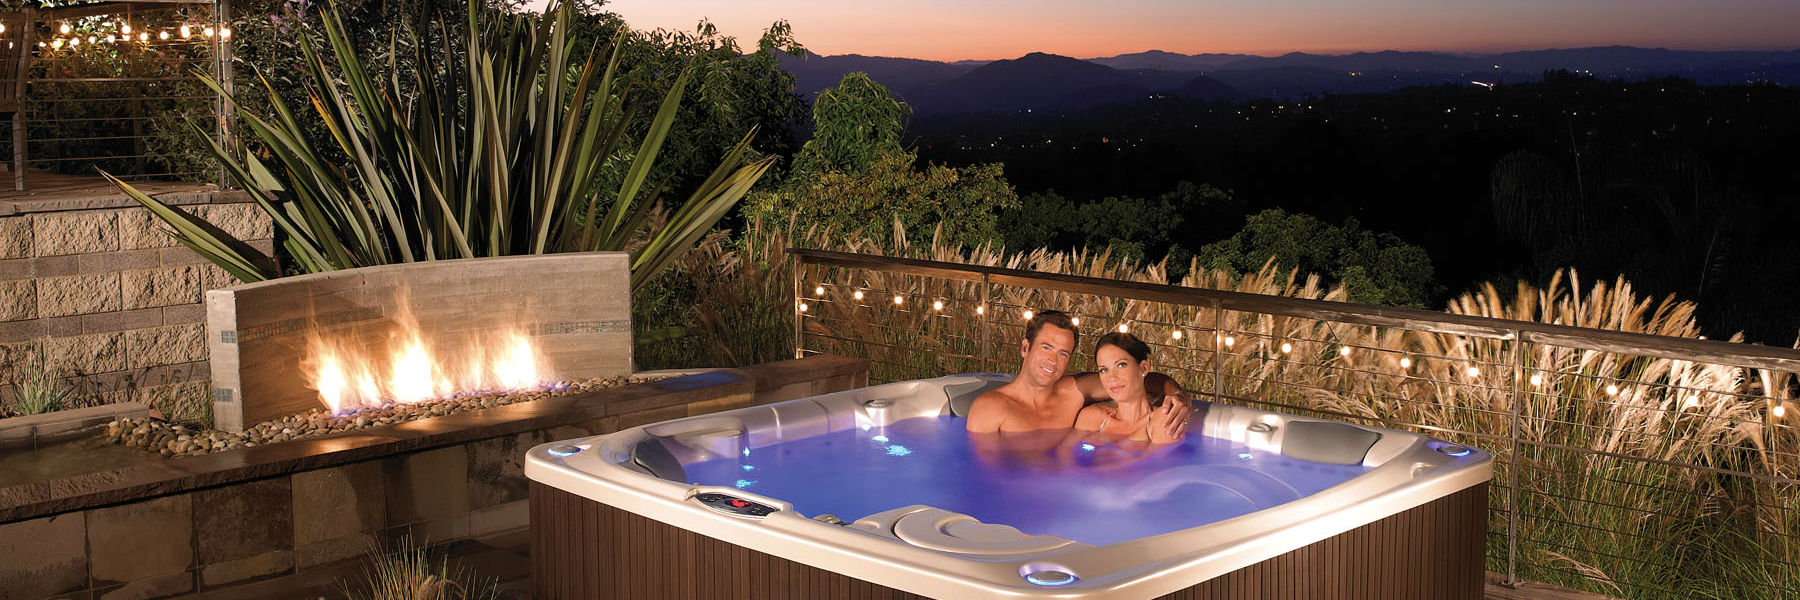 Relieve Insomnia in a Portable Spa, Hot Tubs McMinnville